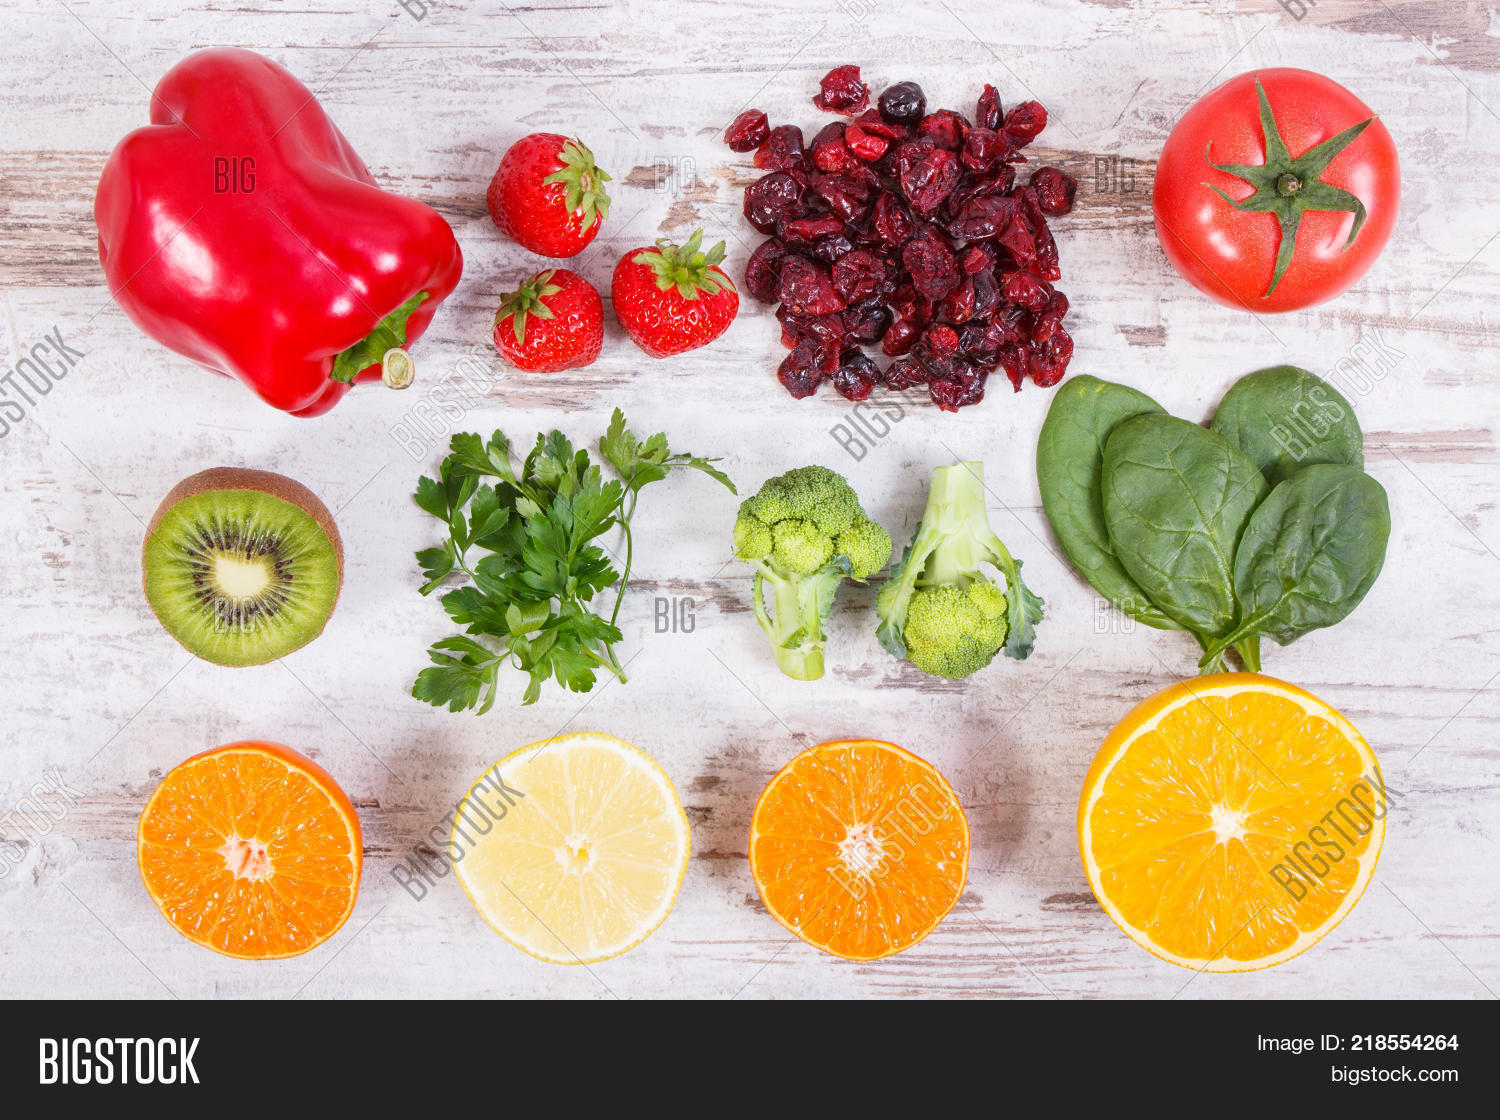 Fruits vegetables sources minerals image photo bigstock fruits and vegetables as sources of minerals containing vitamin c dietary fiber and minerals healthy nutrition workwithnaturefo